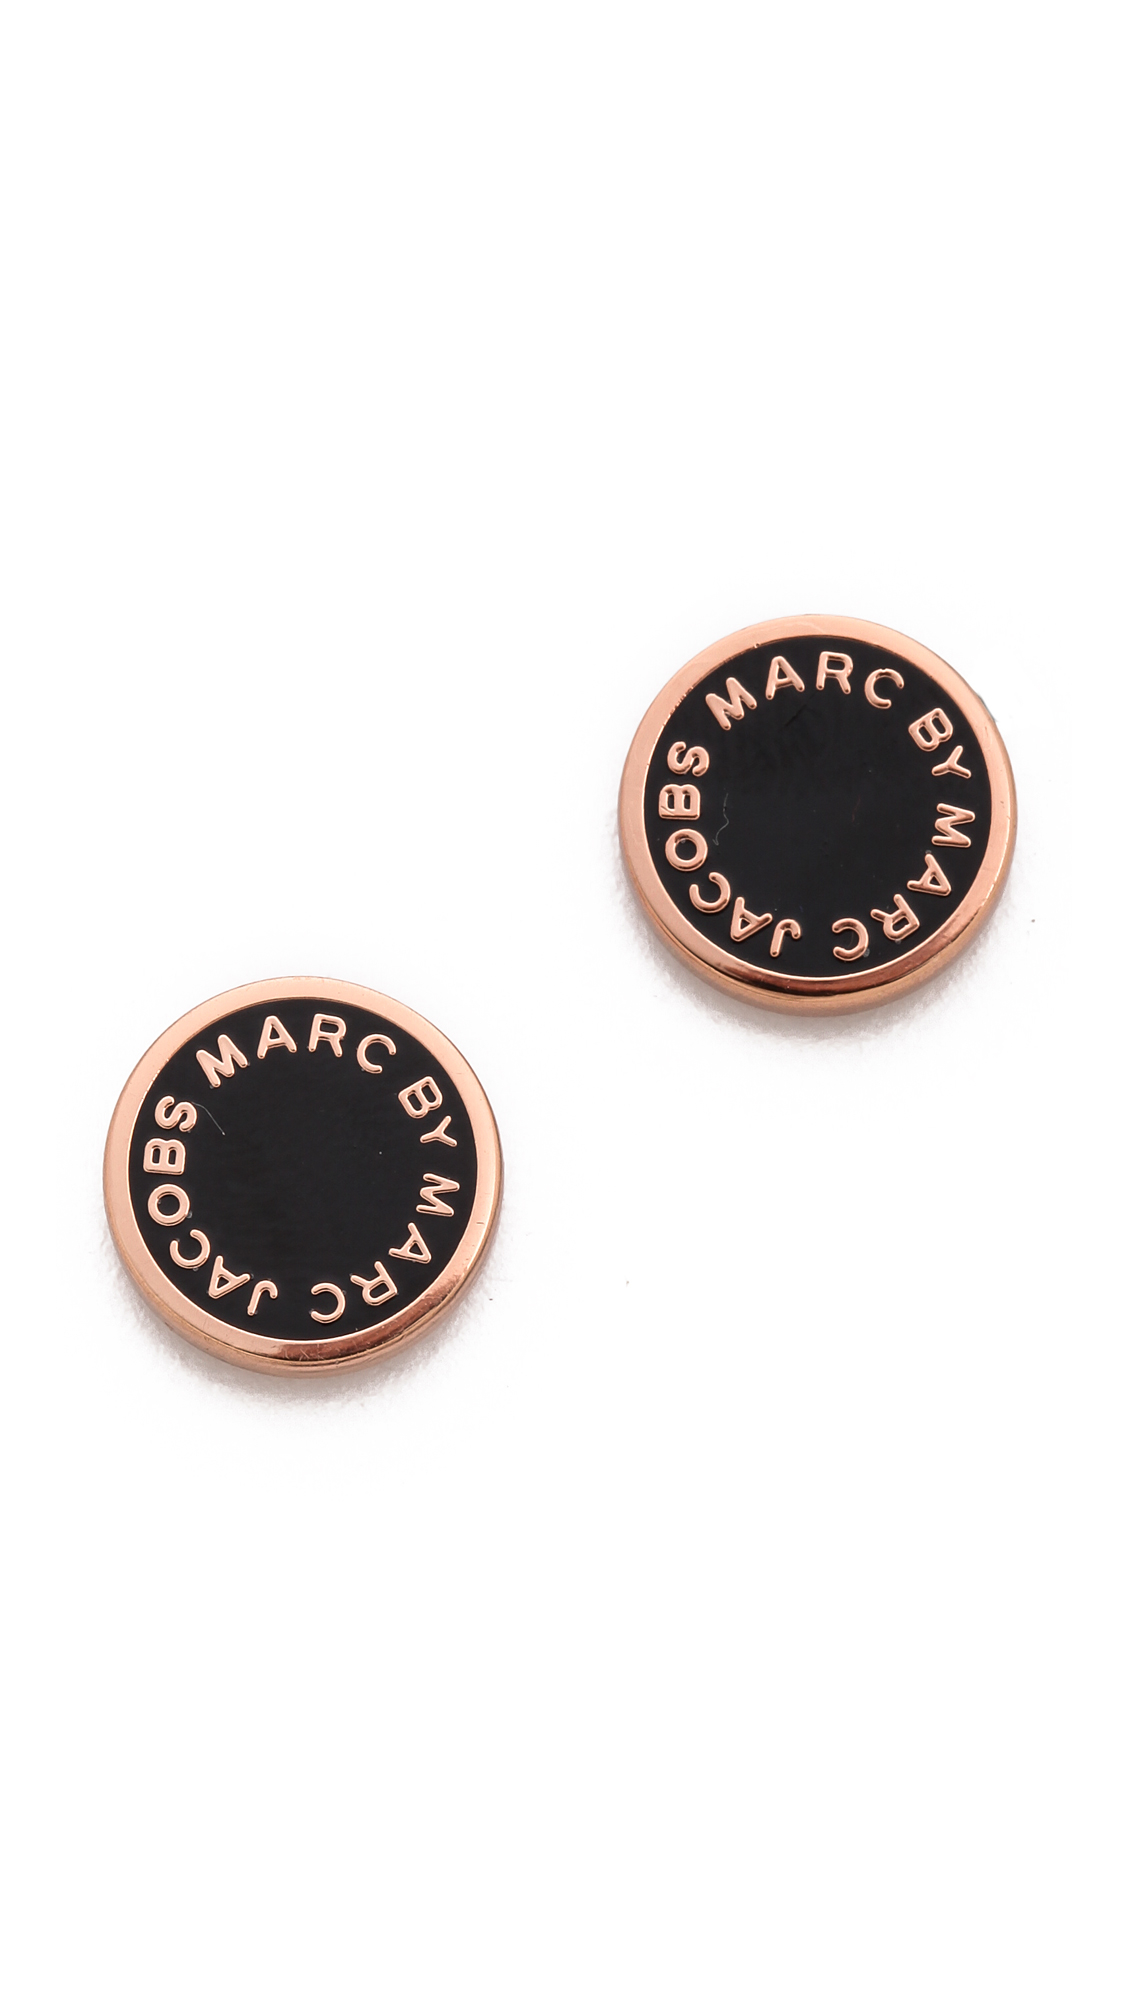 Marc Jacobs Gold and Black Logo Stud Earrings hE6UAoqF